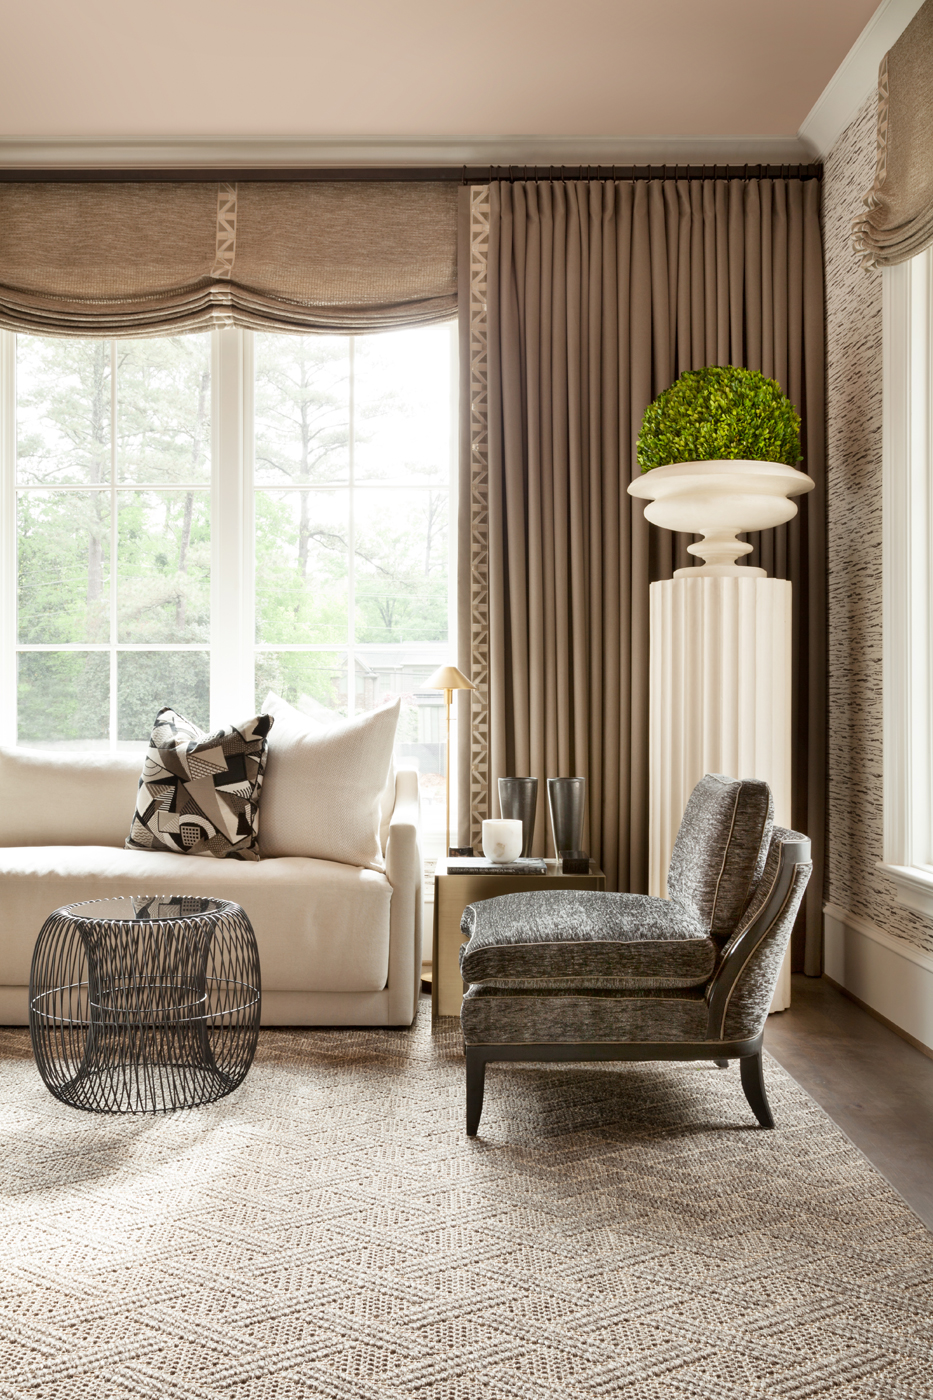 View of the calming Atlanta show house bedroom sitting area decorated with bold but elegant forms | Savage Interior Design